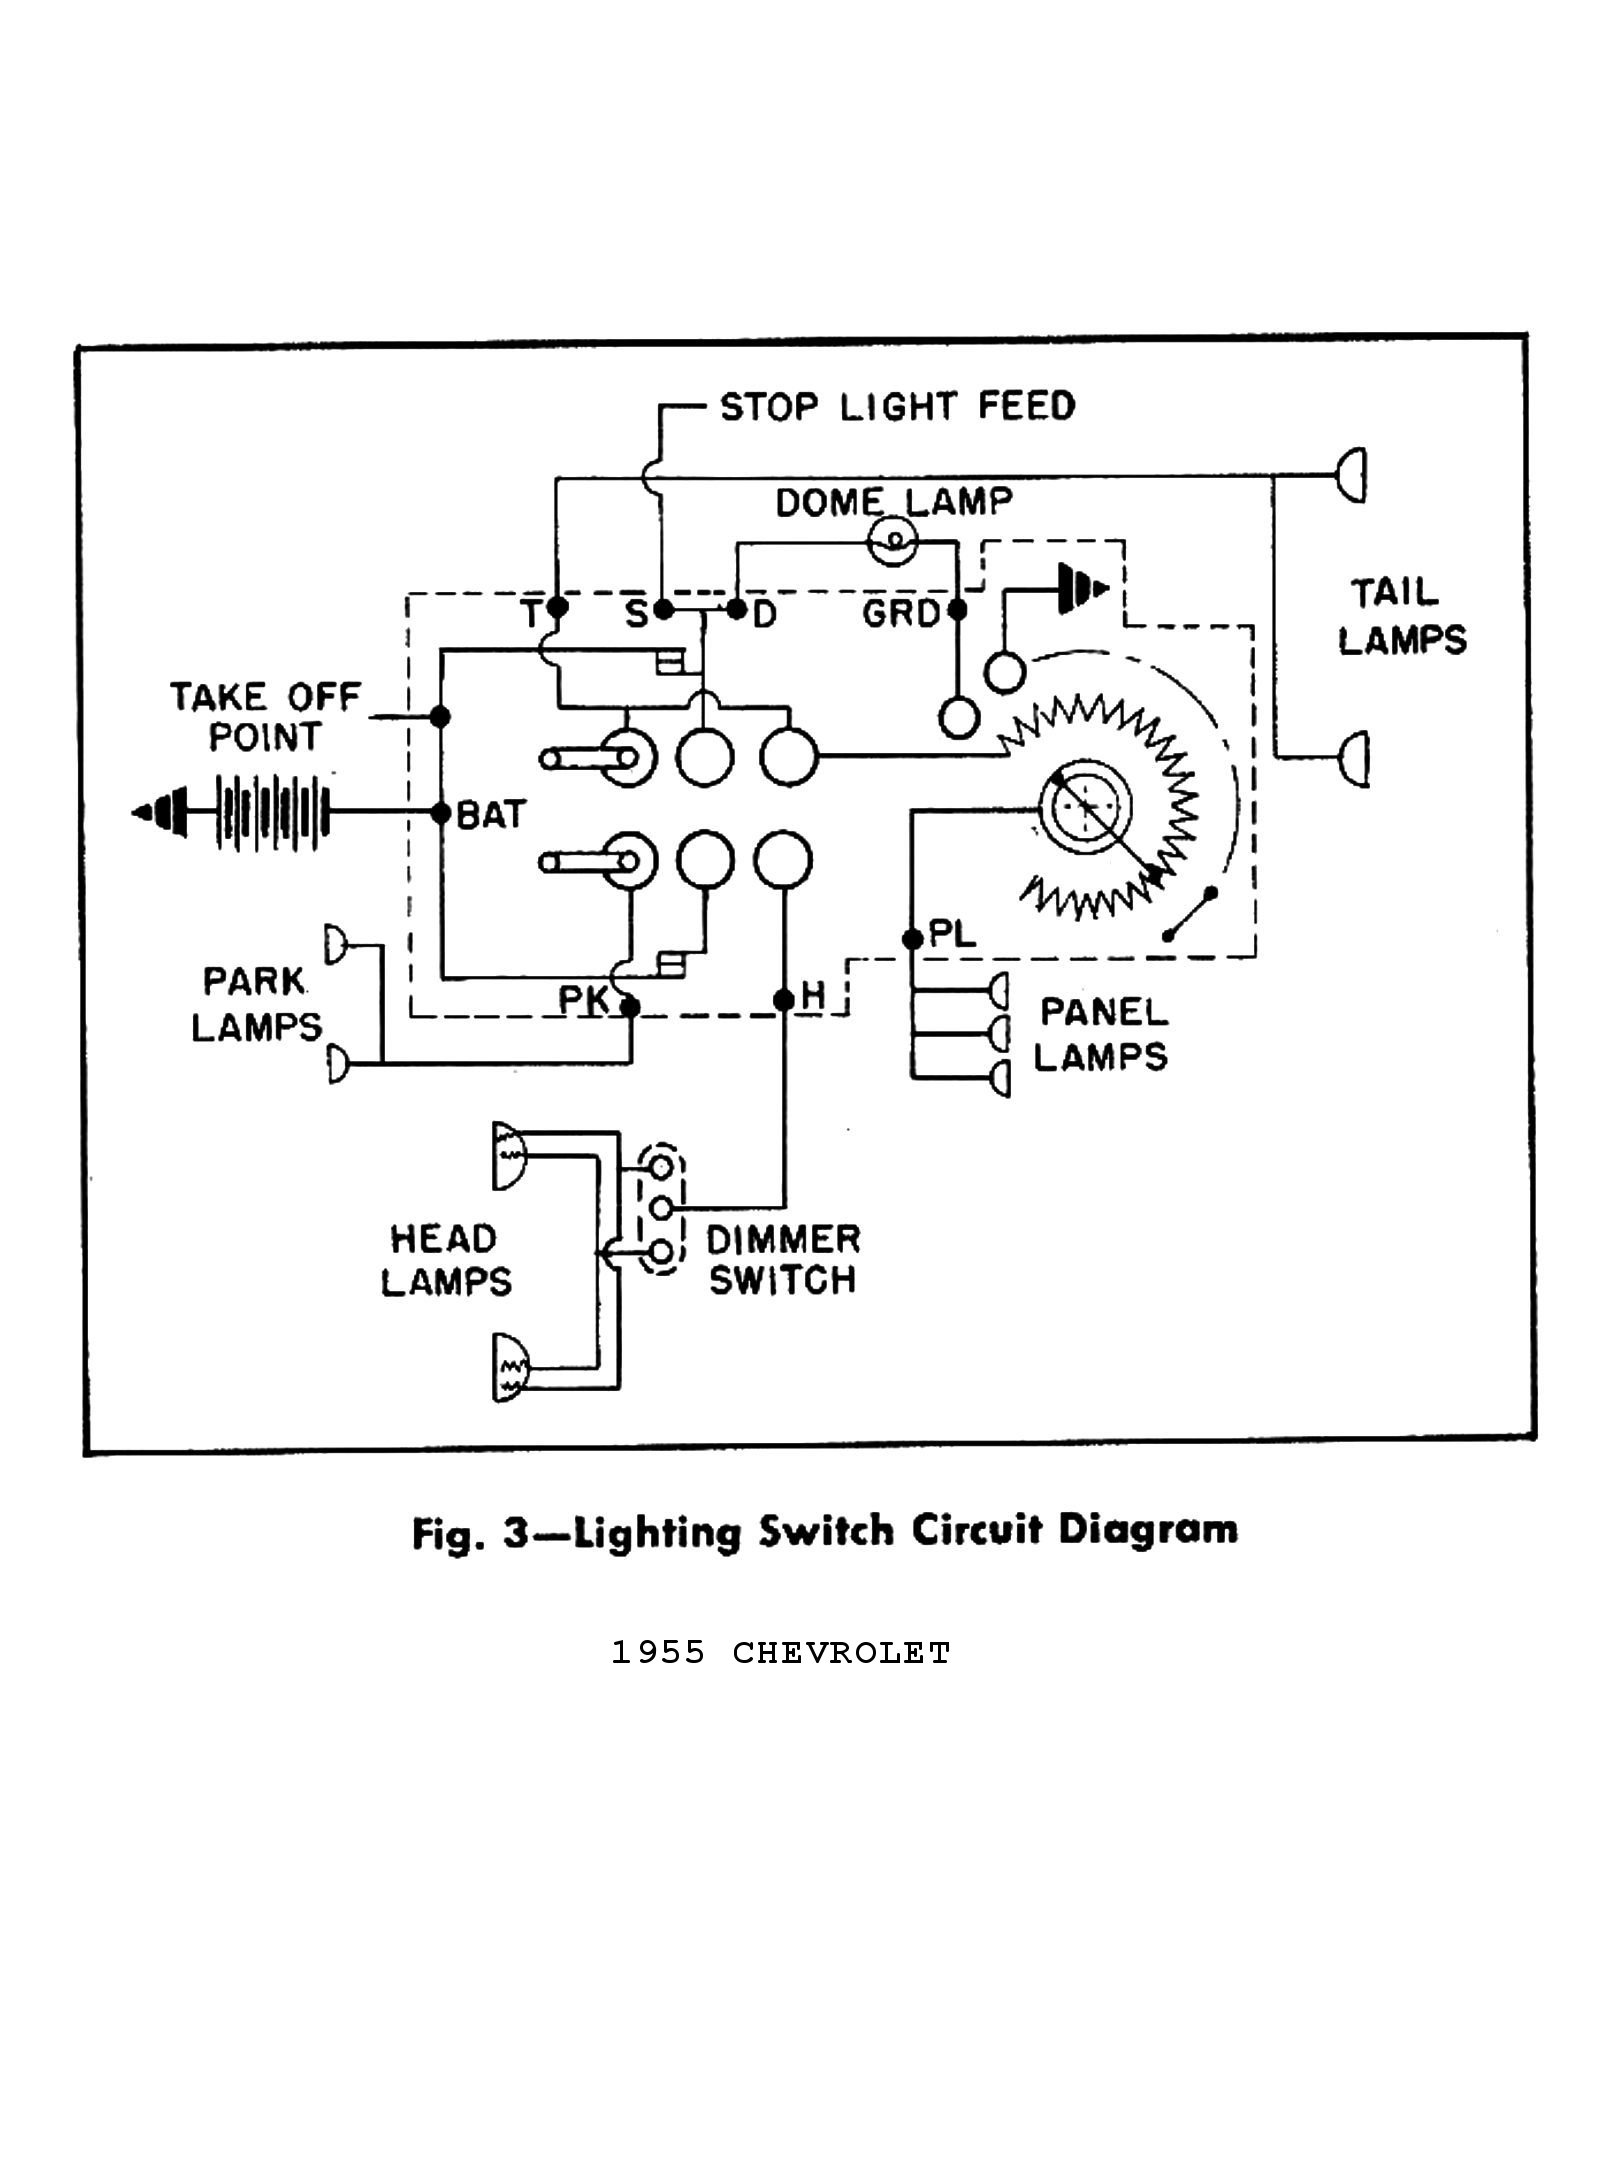 hight resolution of gm steering column dimmer switch wiring diagram schematic wiring light switch wiring diagram accu drive led dimmer switch wiring diagram